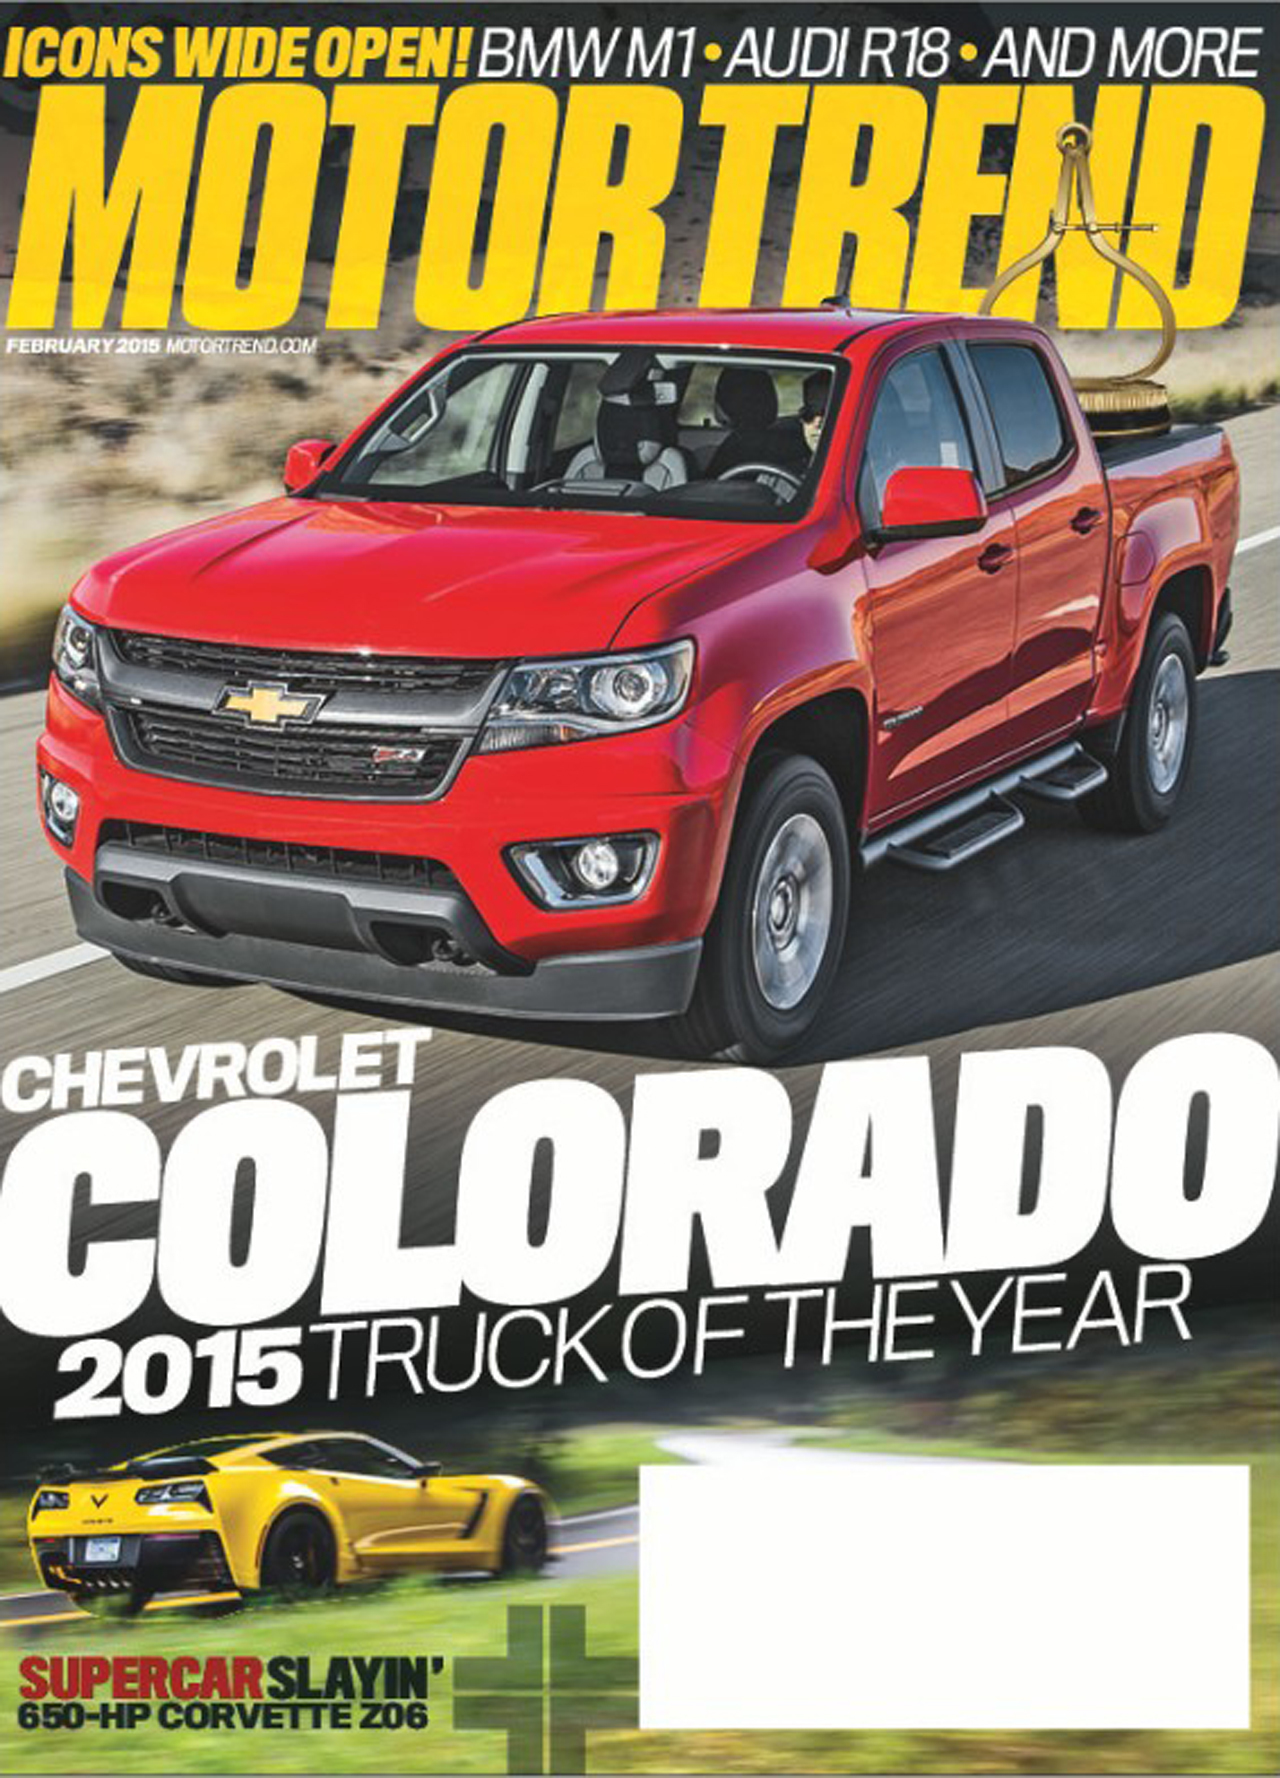 2015 chevrolet colorado motor trend 2015 truck of the year photo gallery autoblog Motor tread